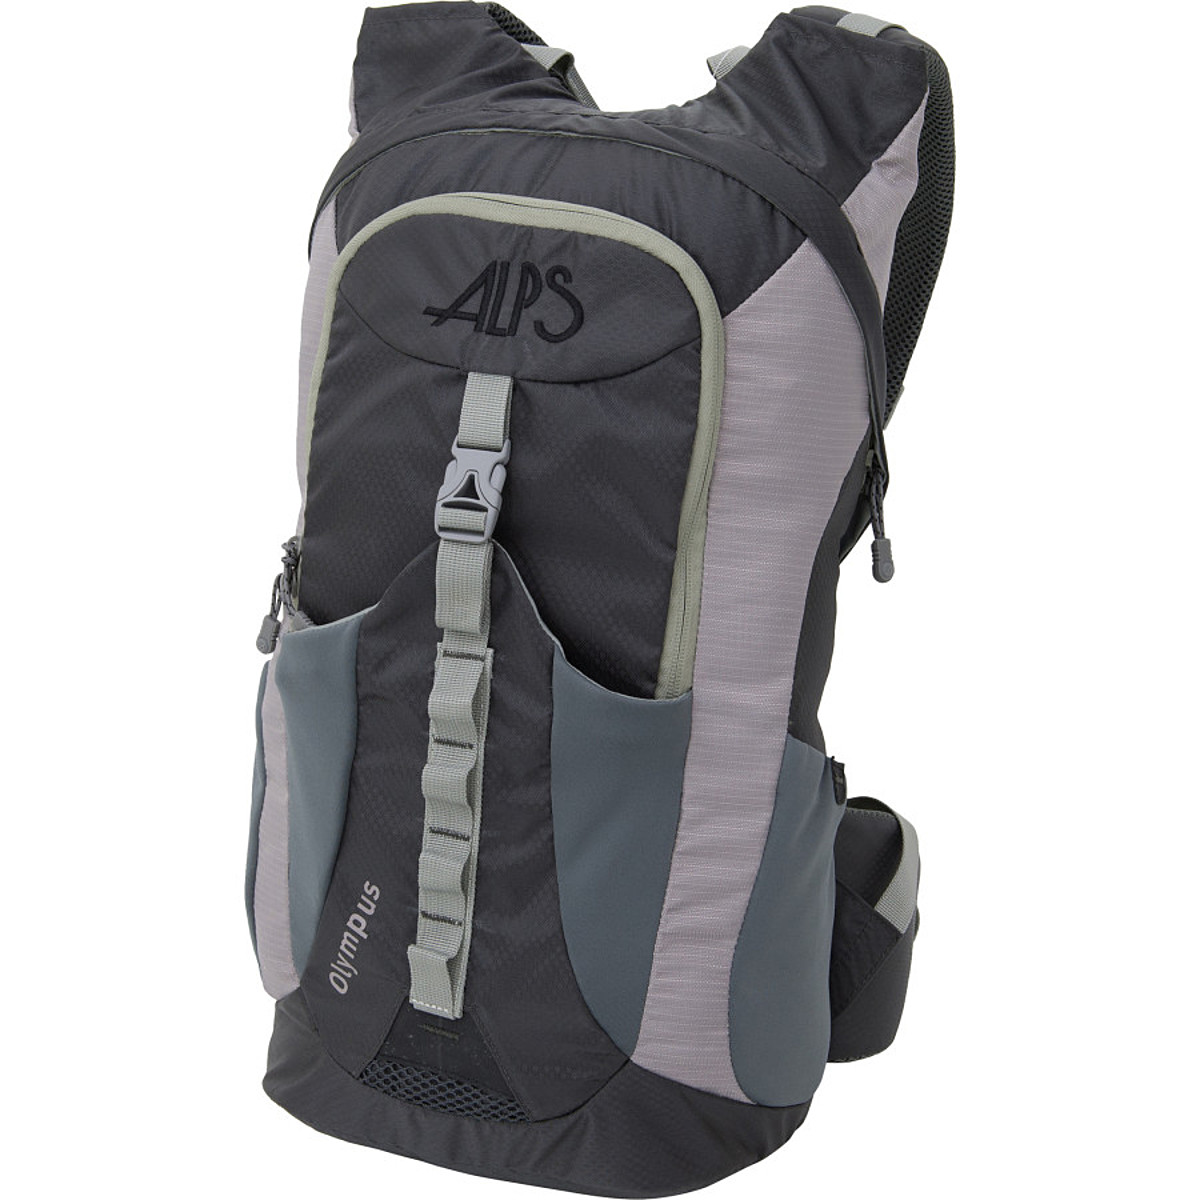 ALPS Mountaineering Olympus